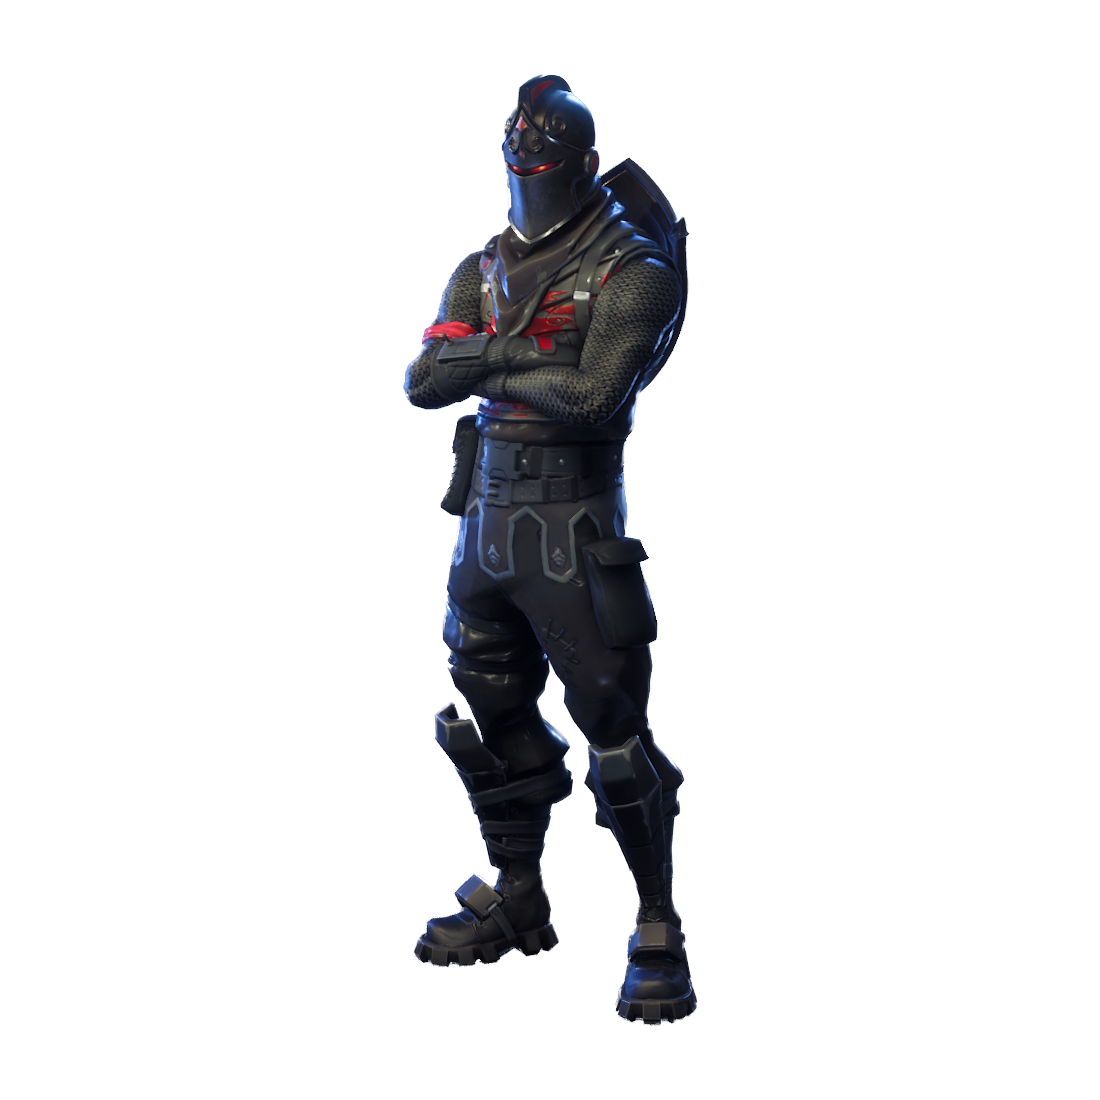 Fnbr Co Fortnite Cosmetics Search more hd transparent fortnite skins image on kindpng. fnbr co fortnite cosmetics